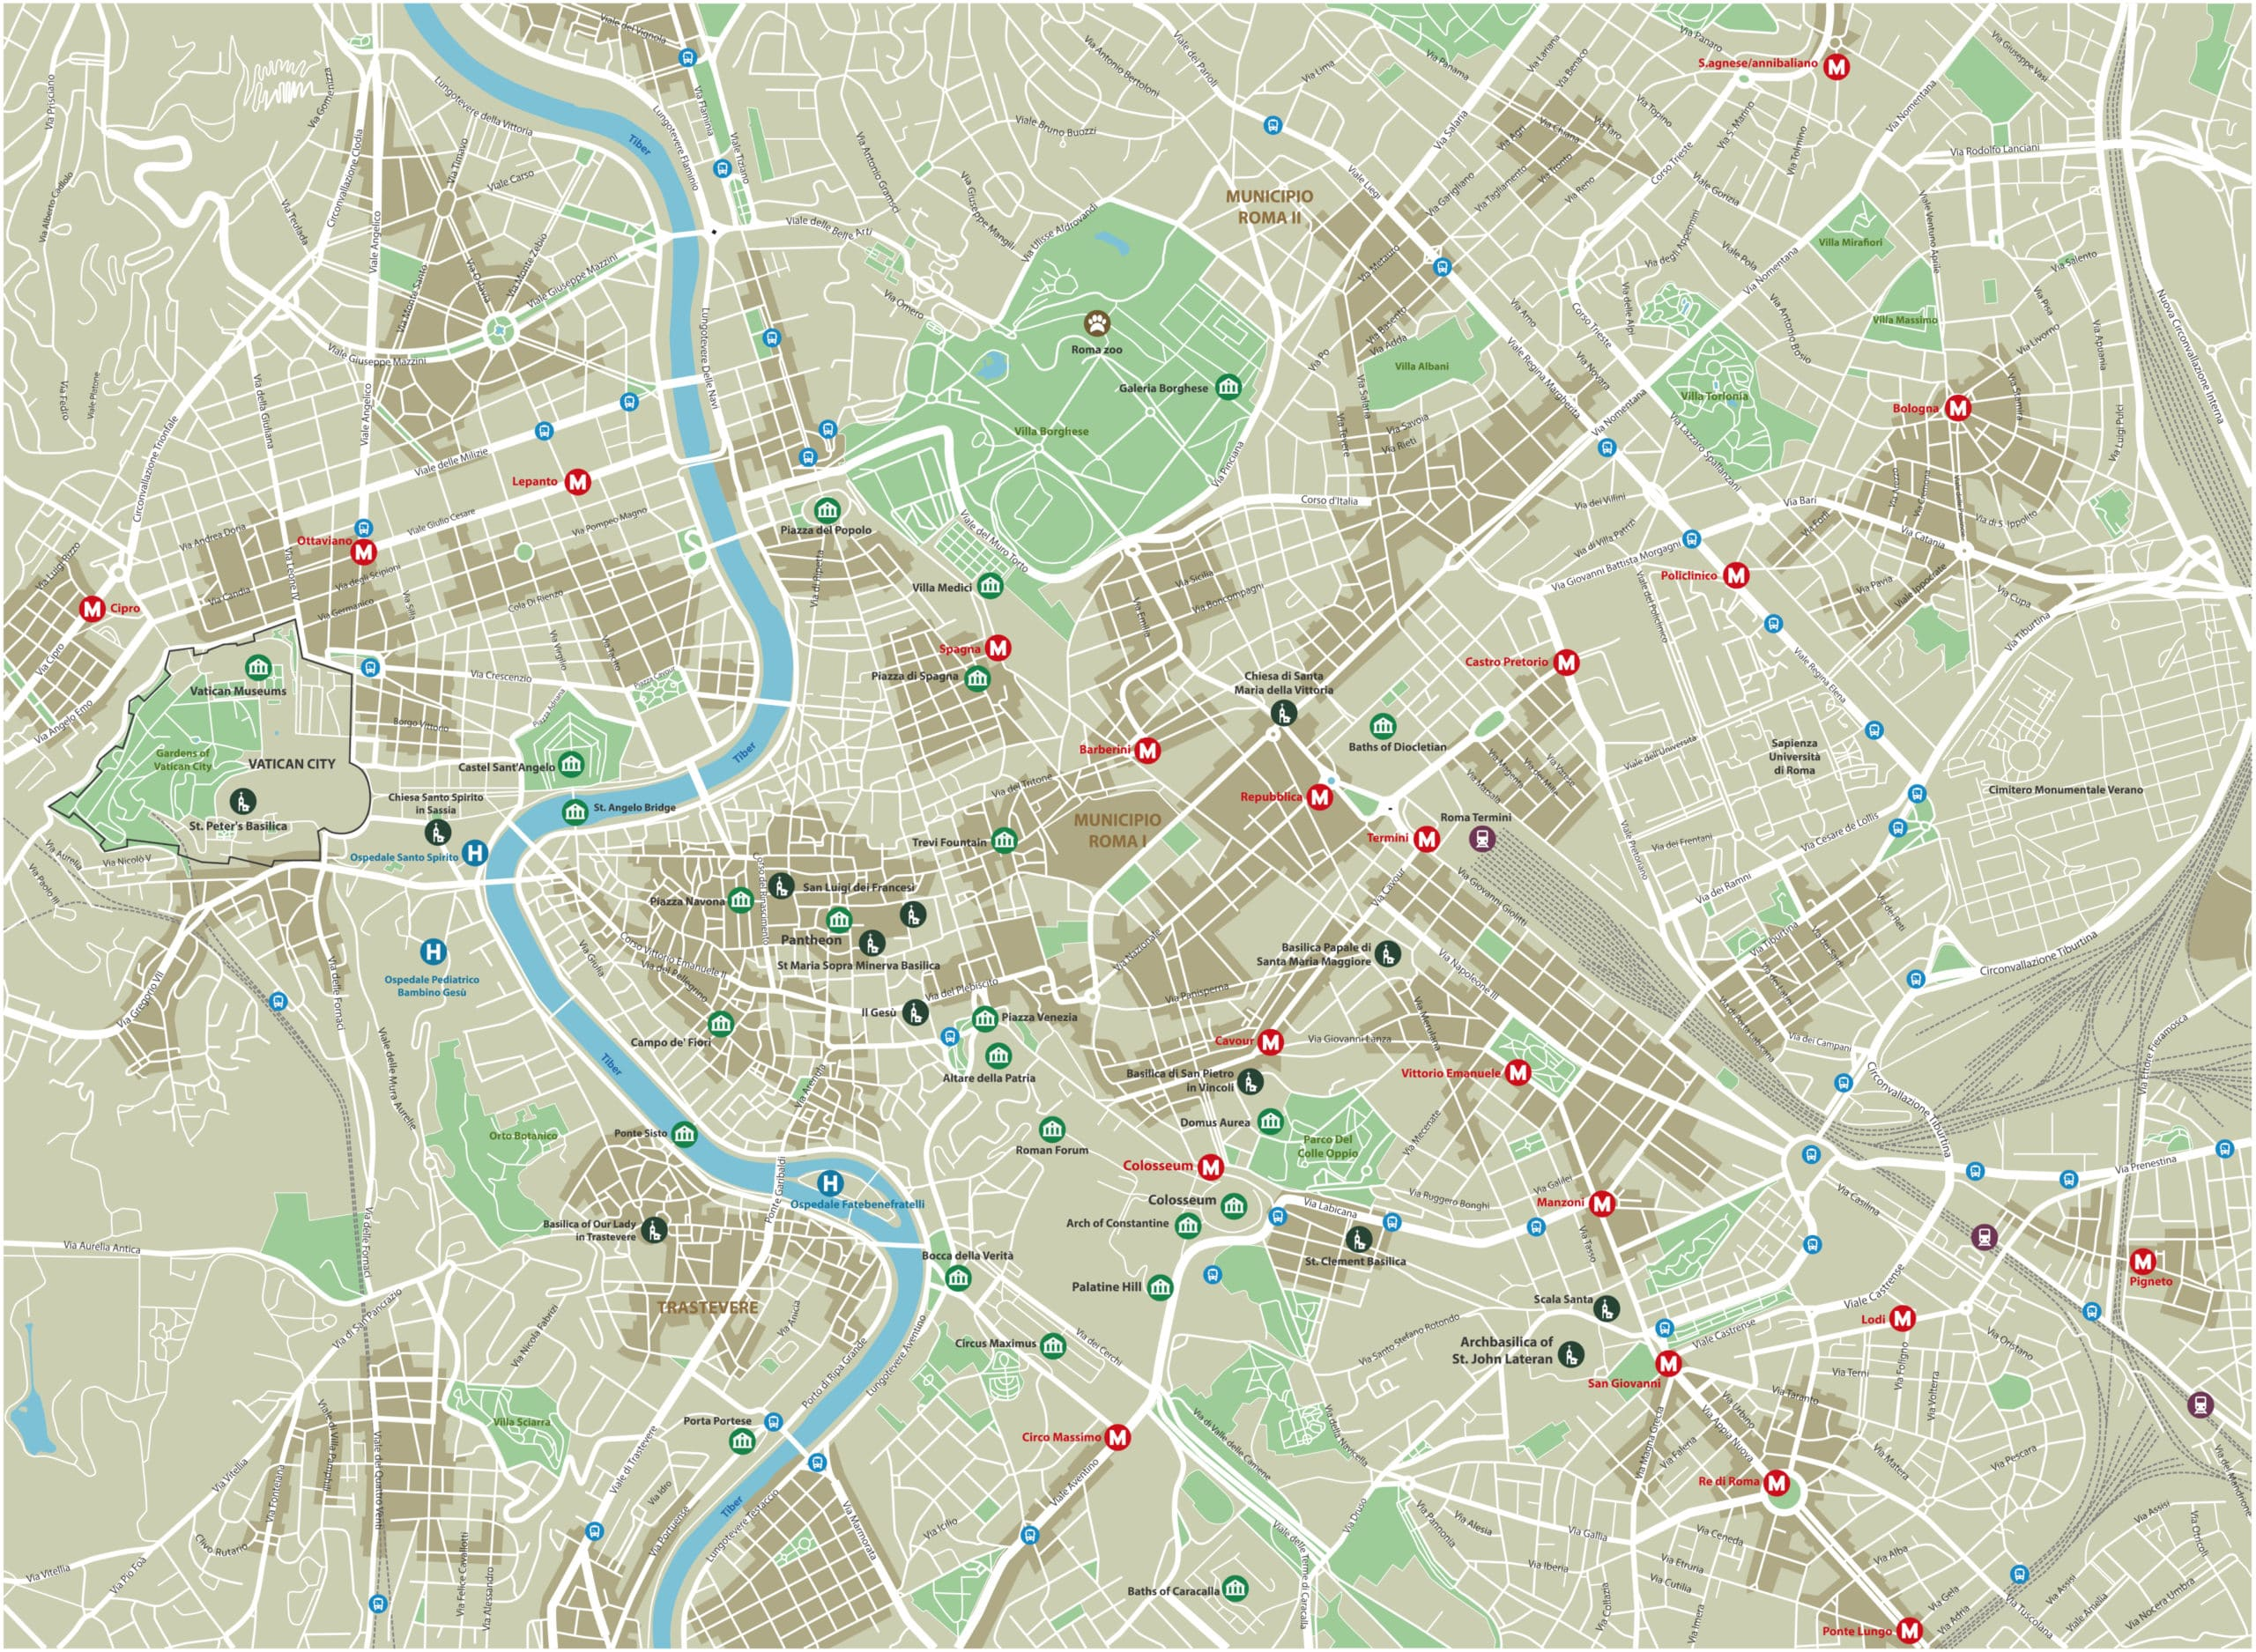 Rome Tourist Map - Colosseum Rome Tickets on